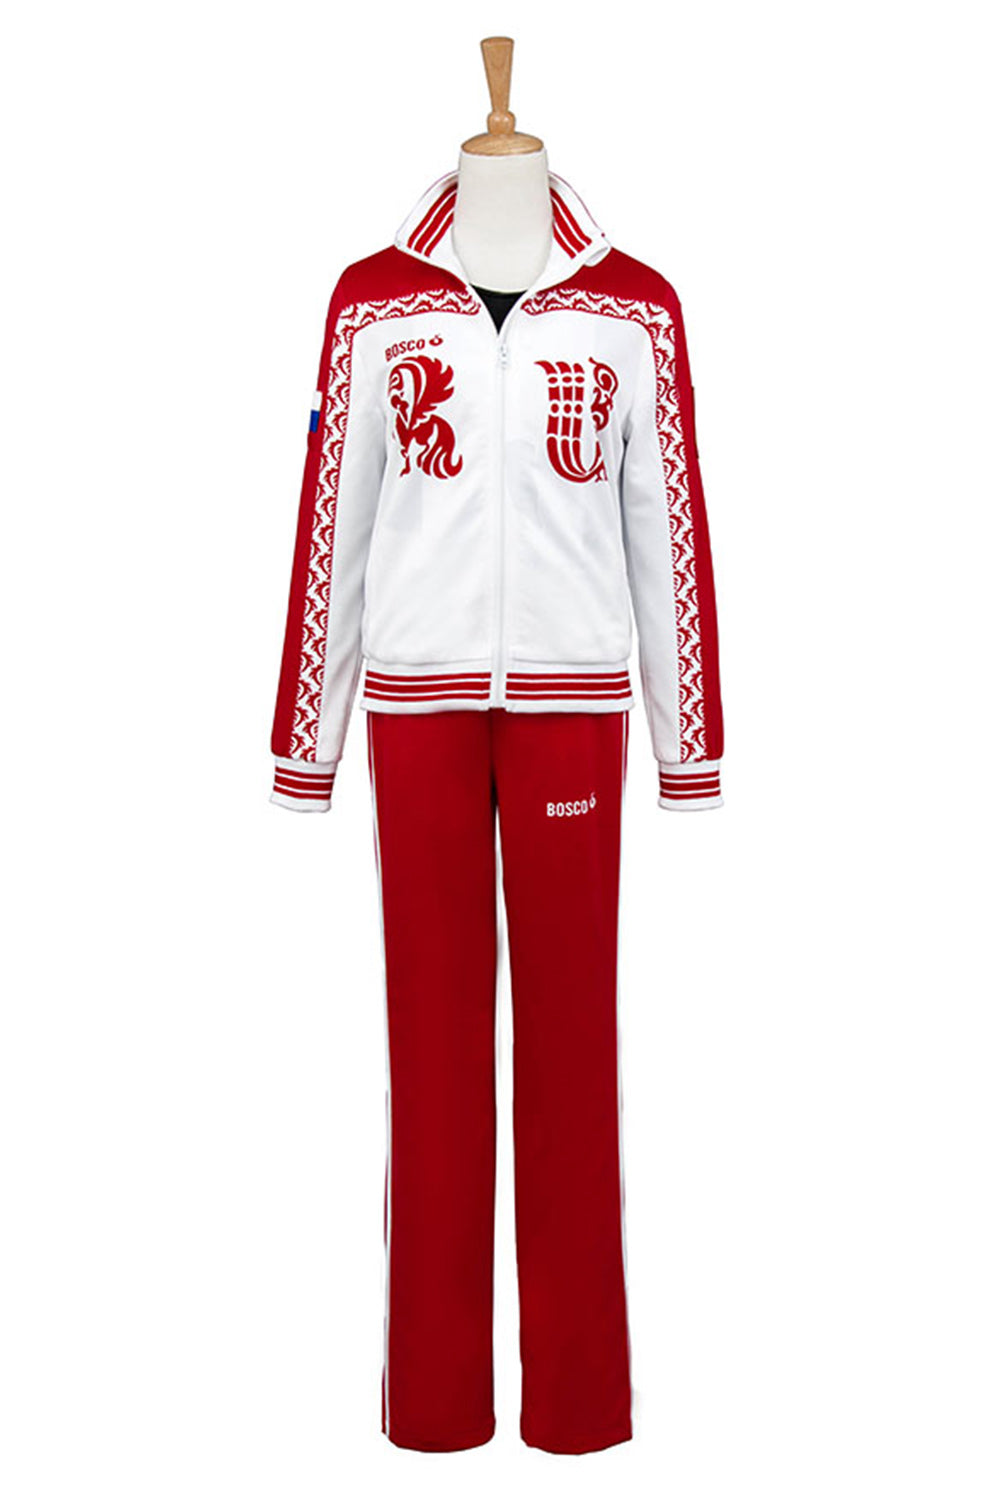 Victor Viktor Nikiforov Costume Yuri on Ice Viktor Nikiforov Uniform Cosplay Costume